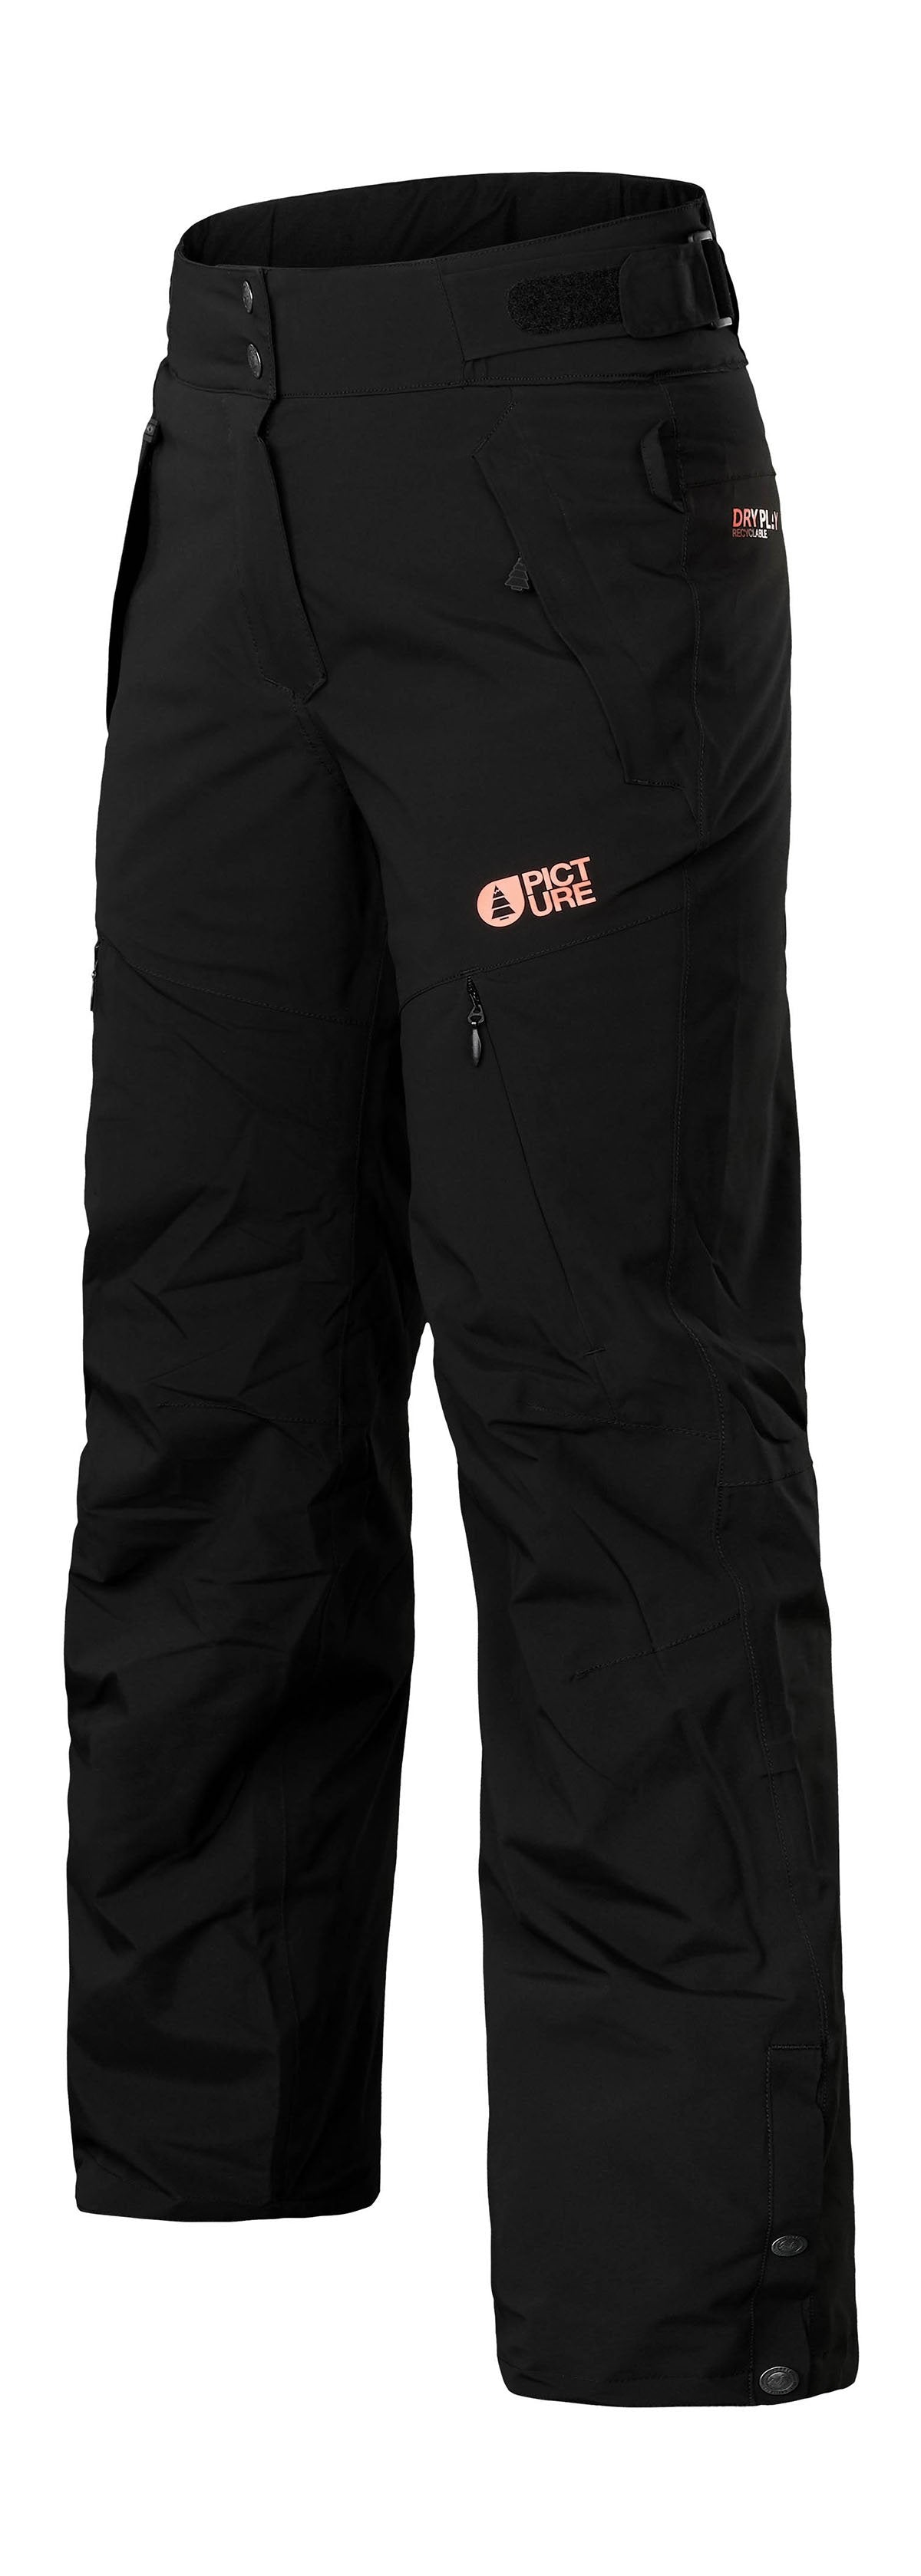 Picture Luna Ski Pants